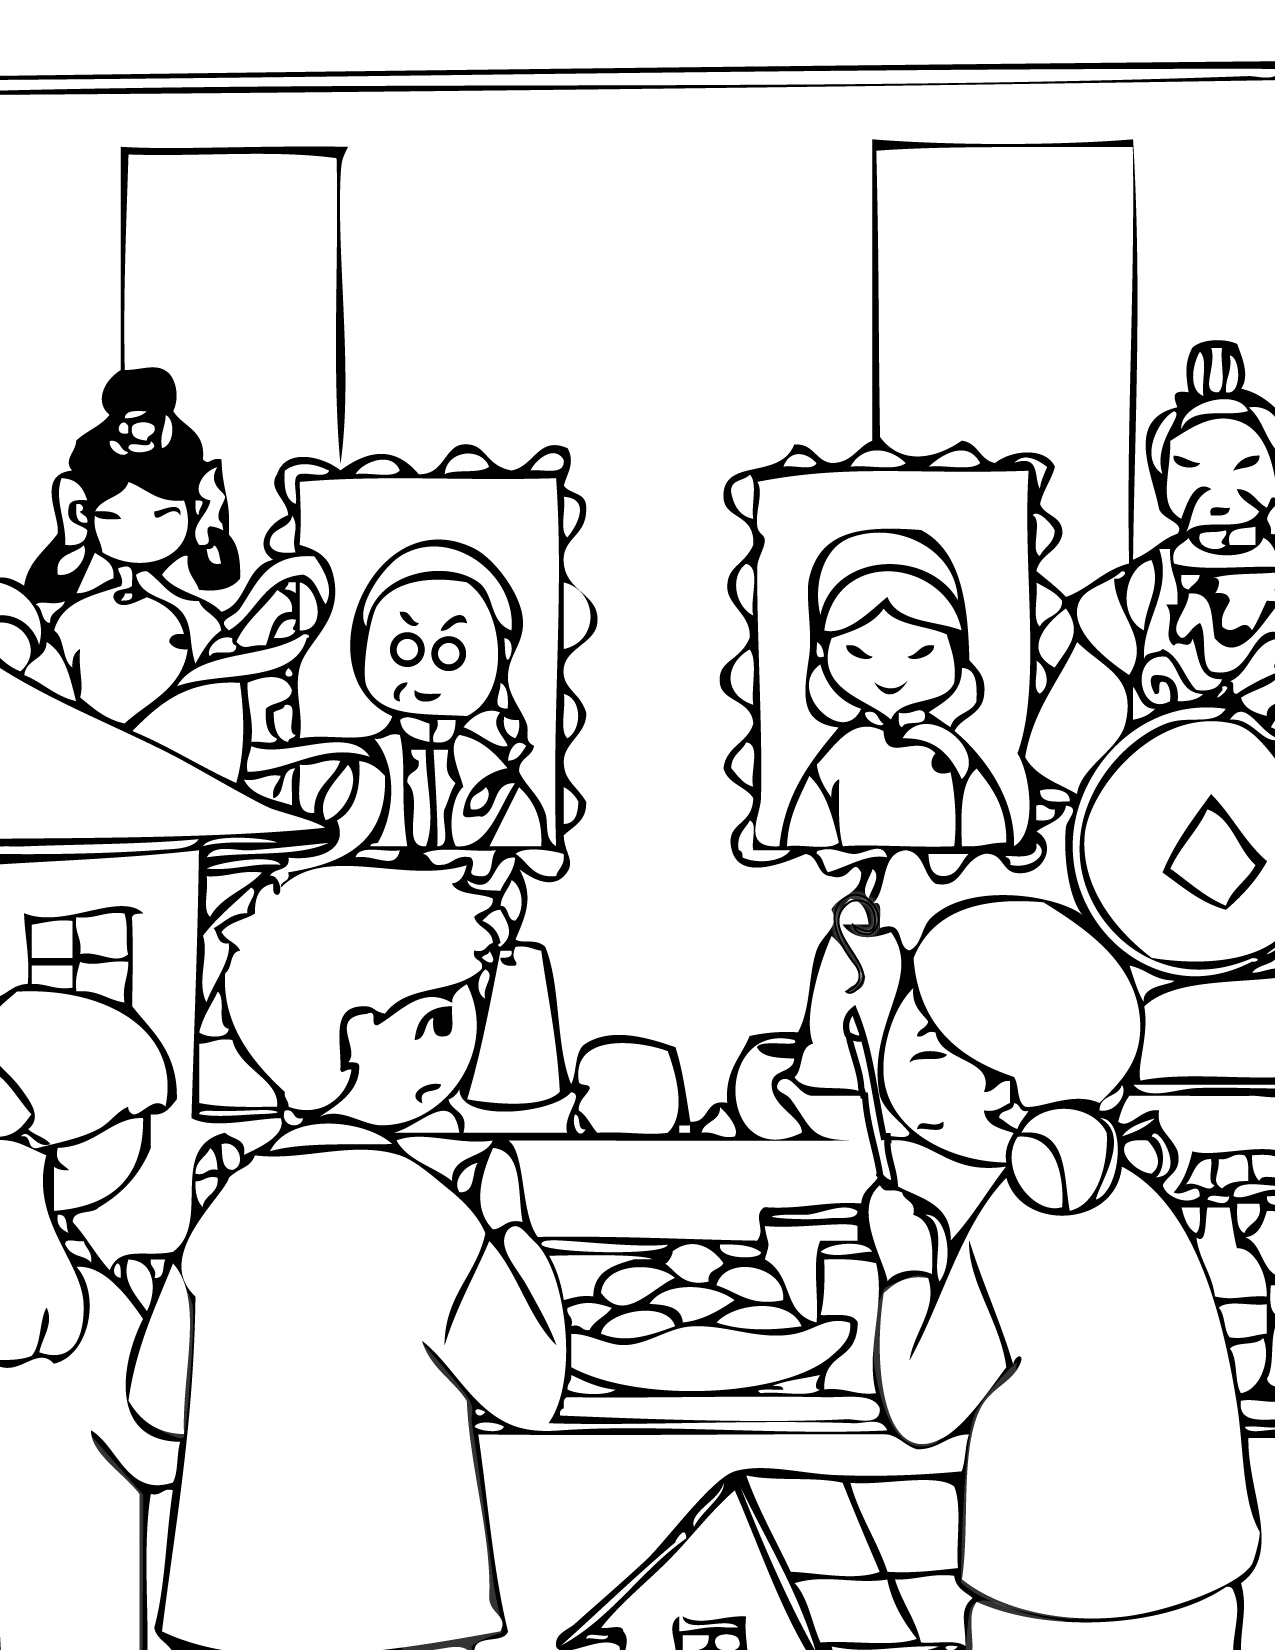 Images Of Pumpkin A Pumpkin Coloring Pages Coloring Pages